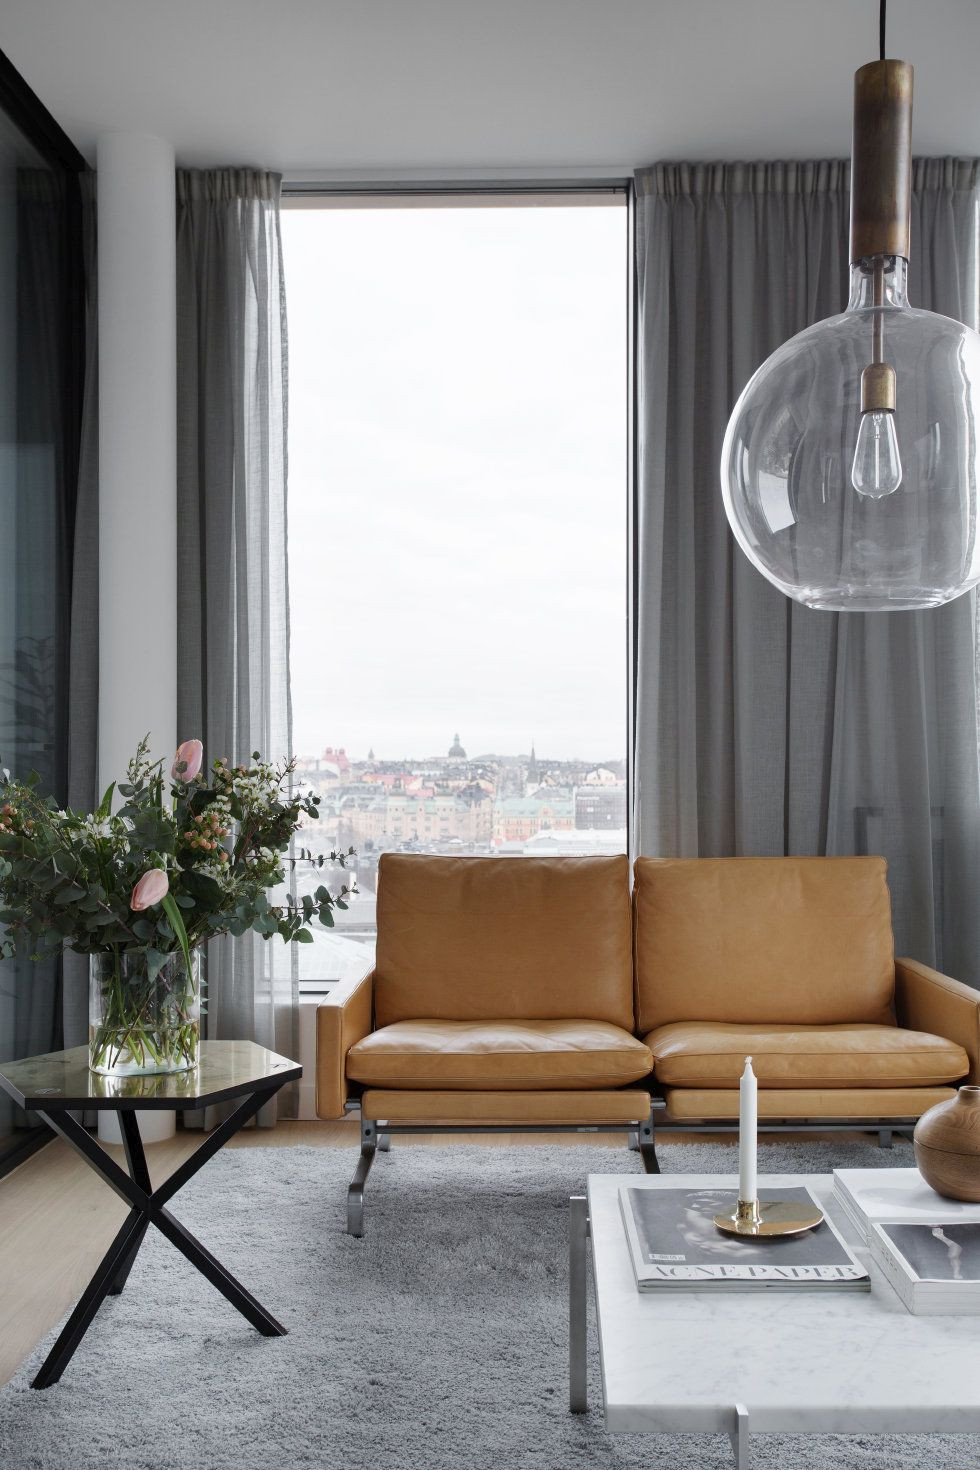 Best Curtains For Living Room  The Best Curtains for Modern Interior Decorating